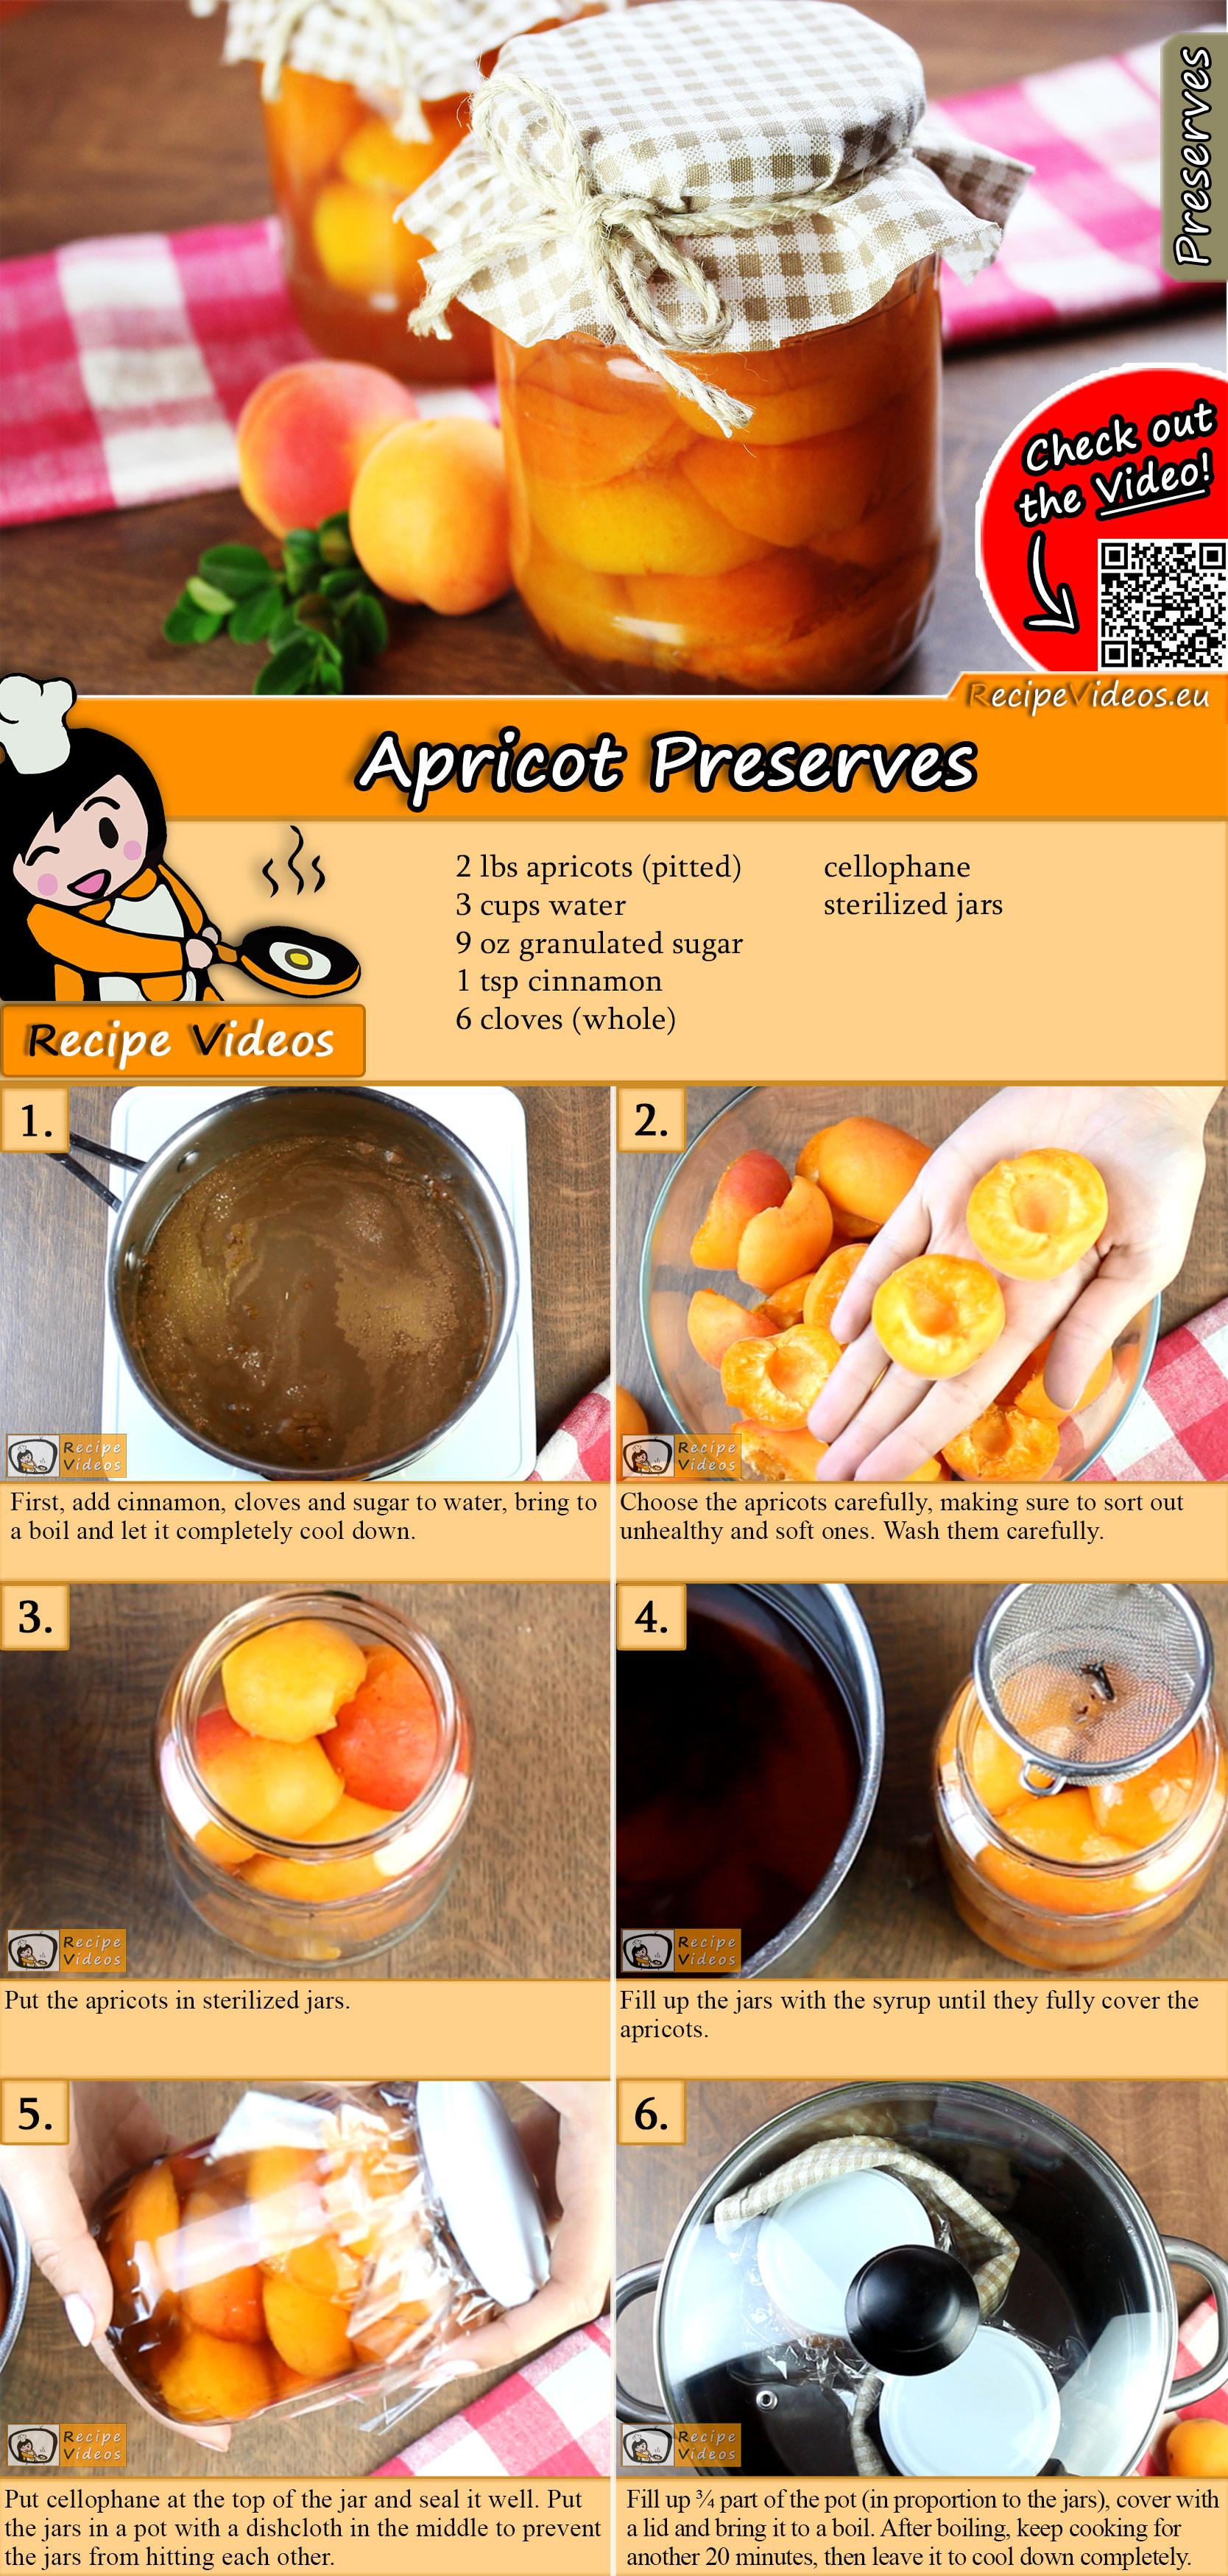 Apricot preserves recipe with video